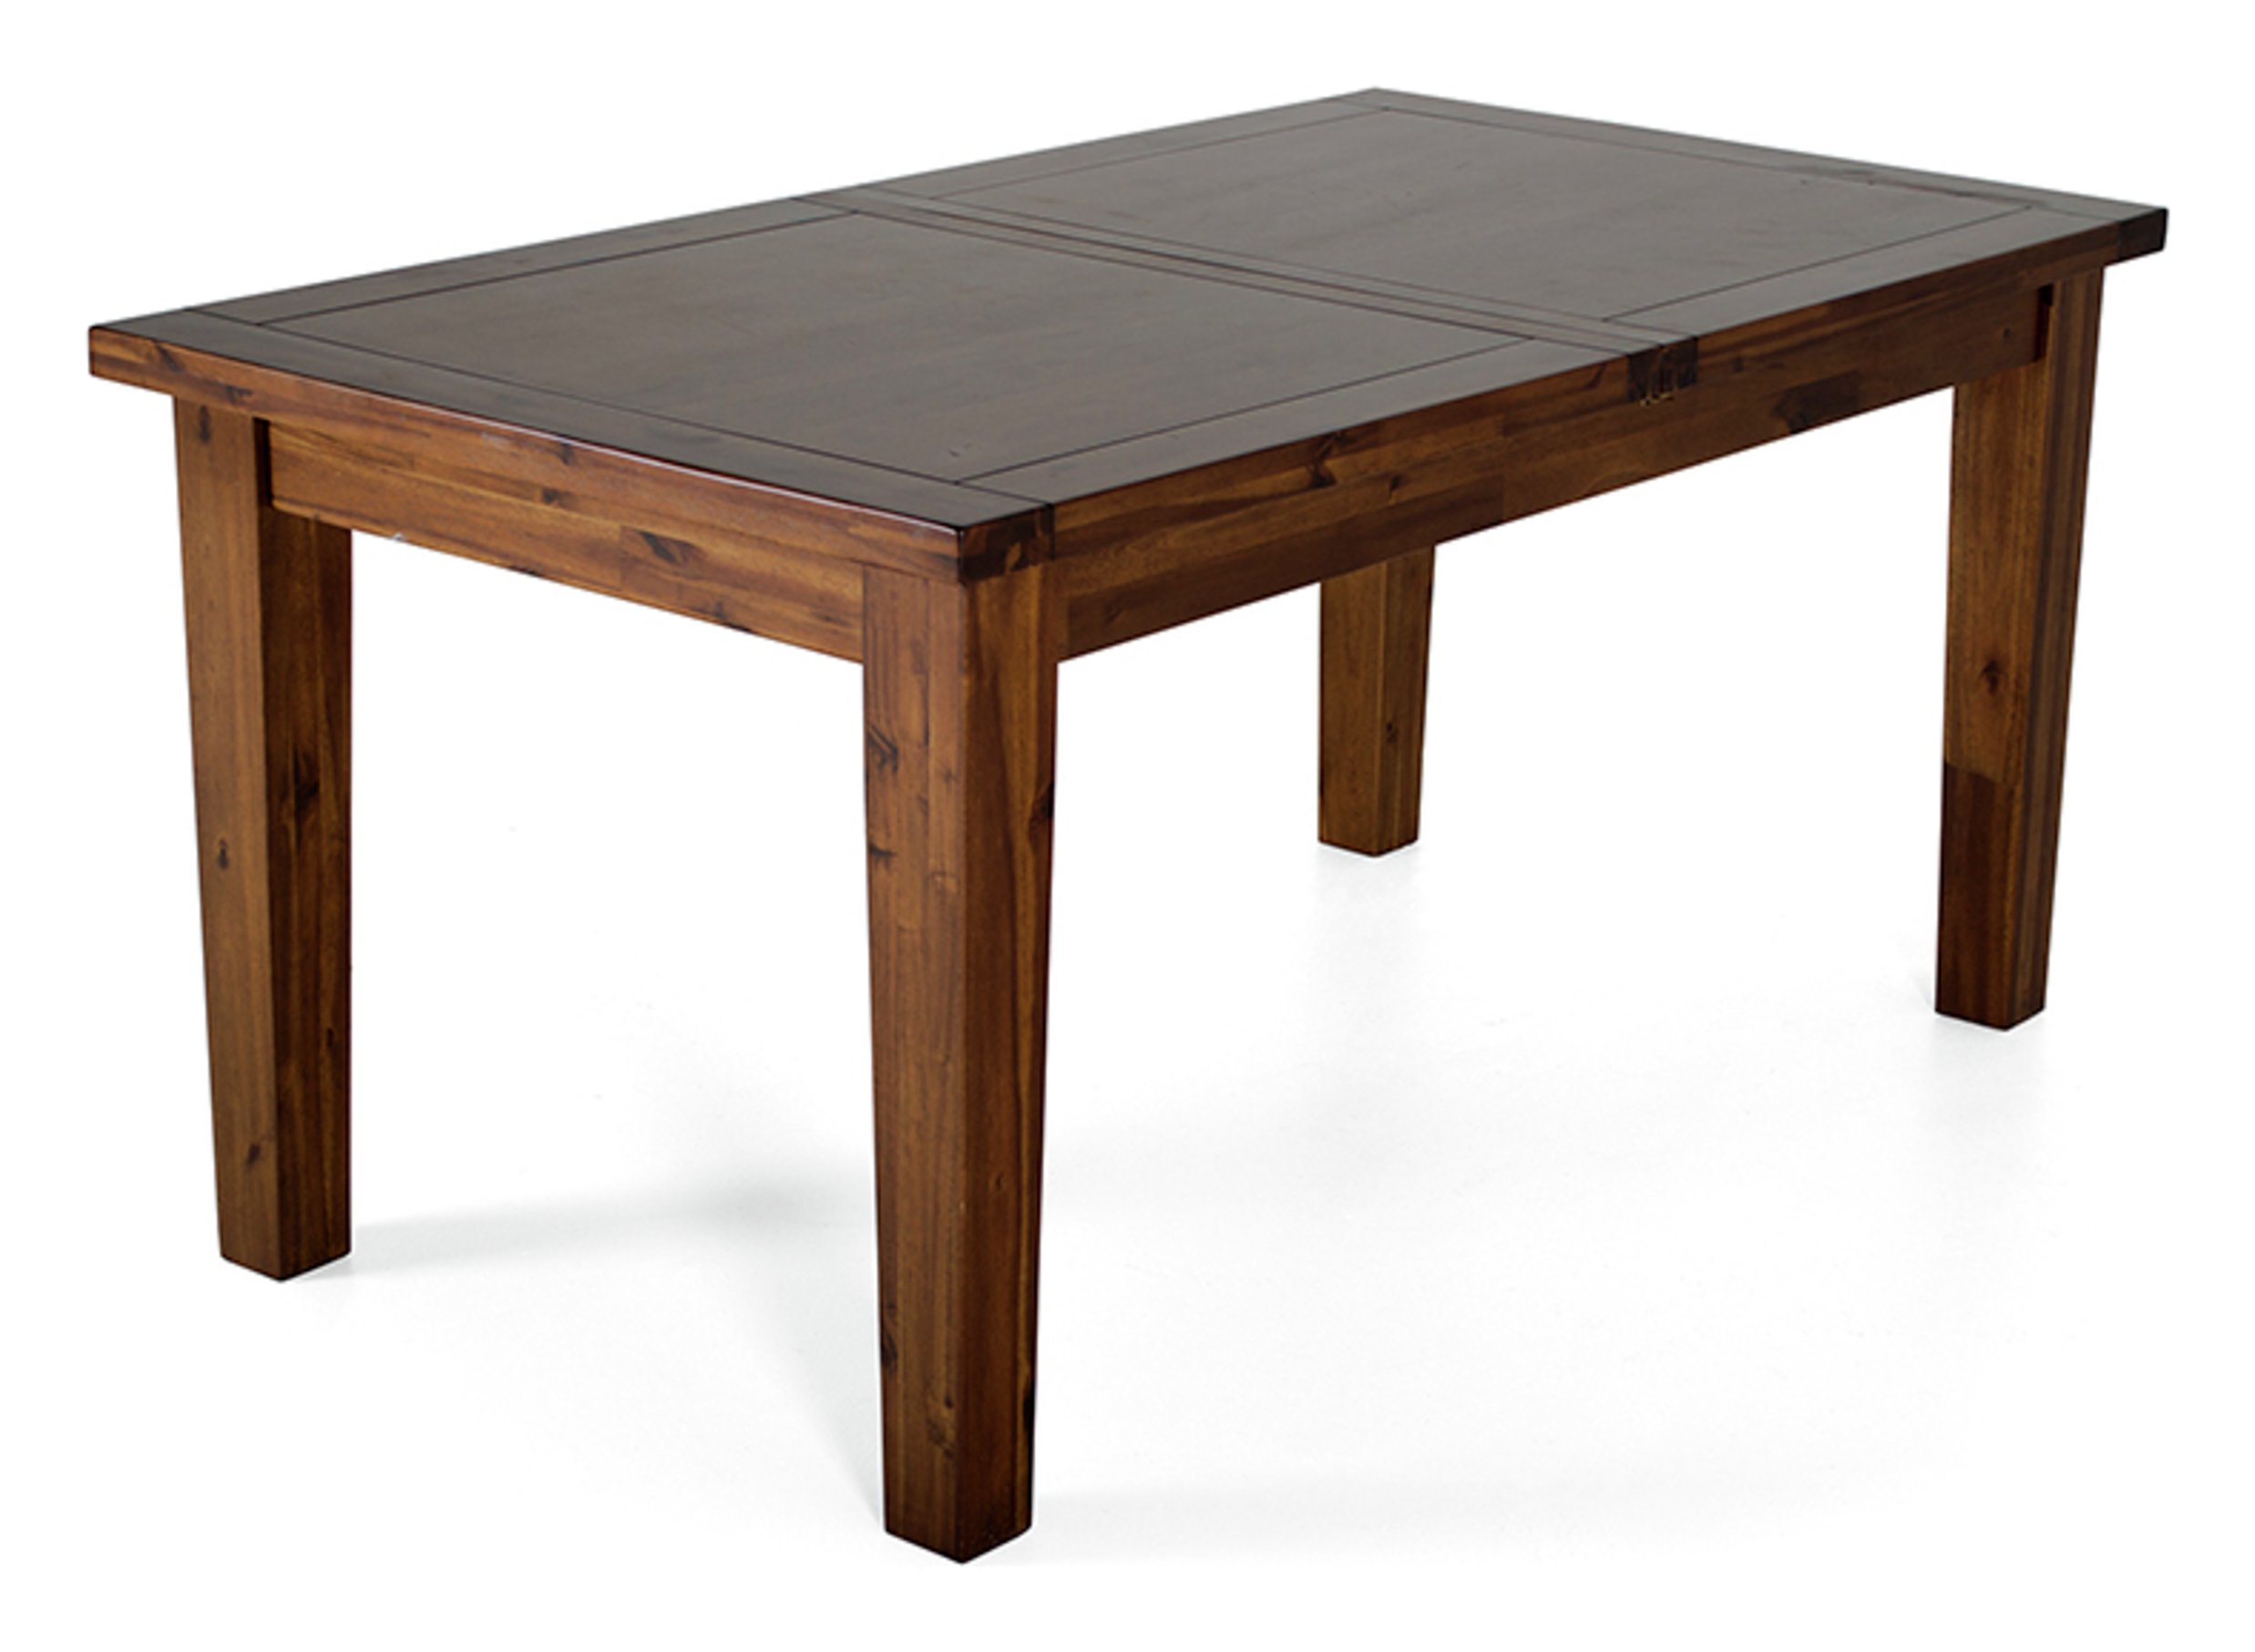 Image of Furnoko Emerson Extendable Solid Wood 8 Seater Table -Walnut